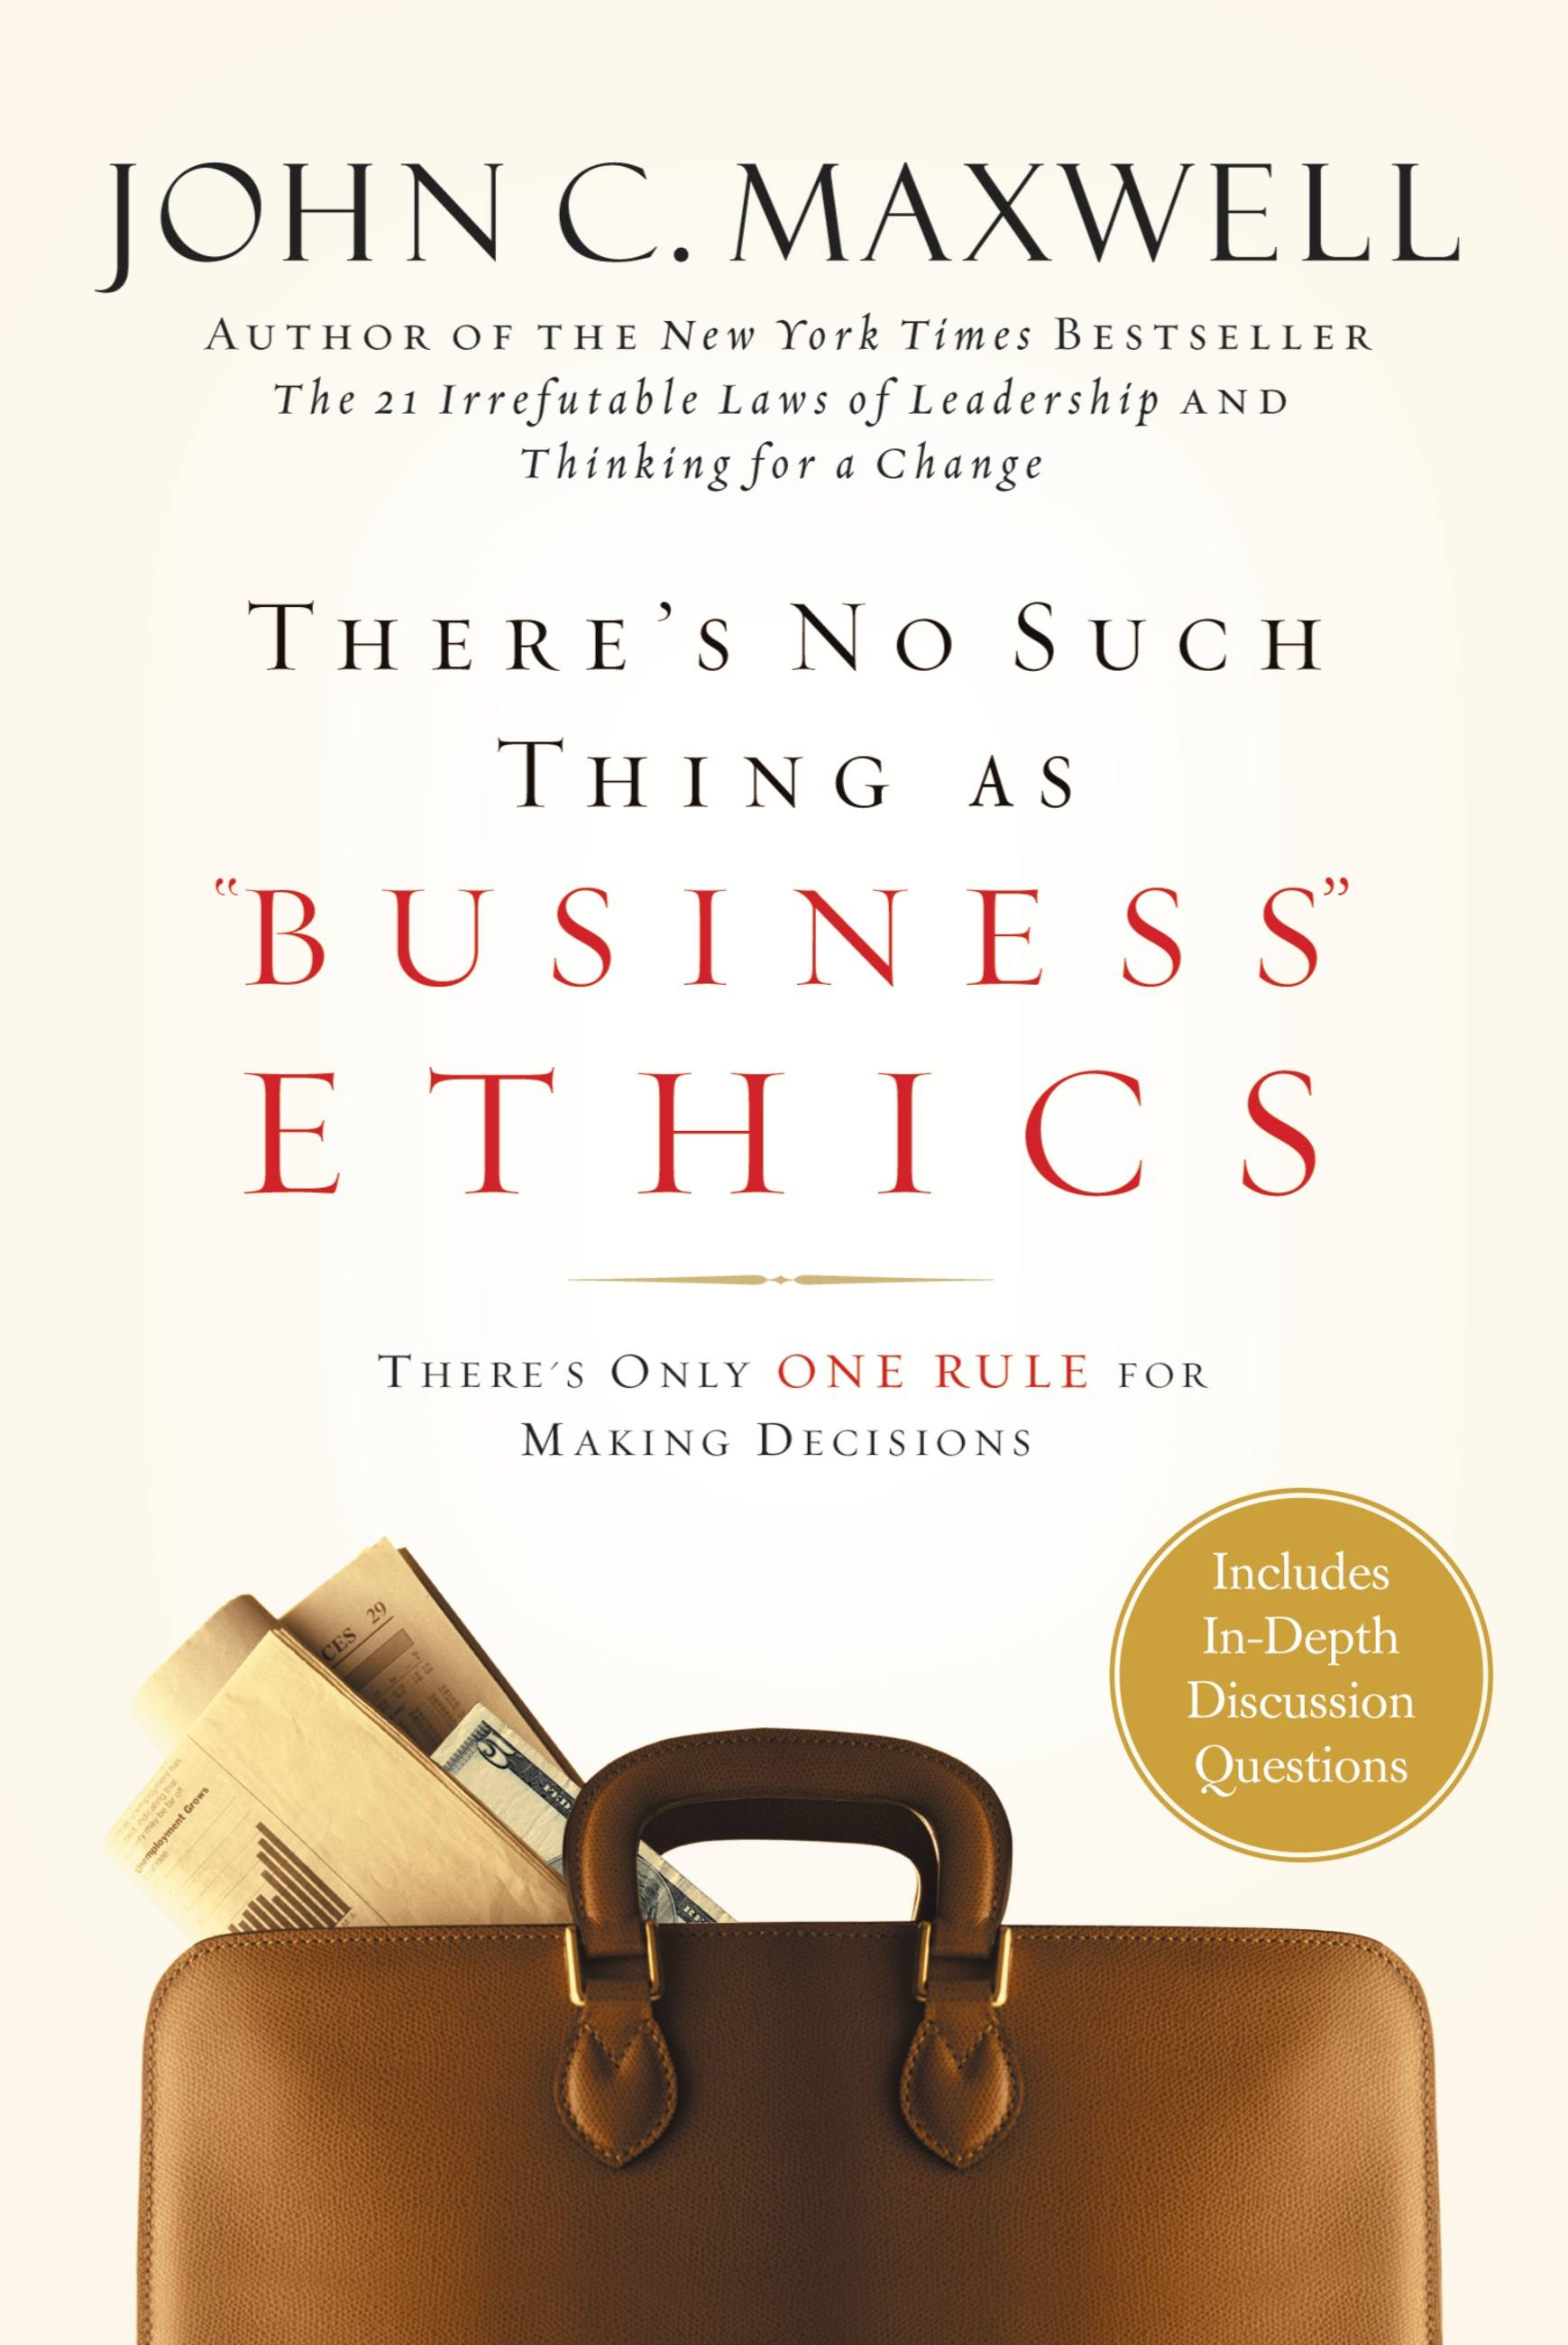 there s no such thing as business ethics there s only one rule for making decisions It is a personal issue therefore, he suggests that in business decisions, just as  in our personal life, there is only one rule for making decisions: the golden rule.